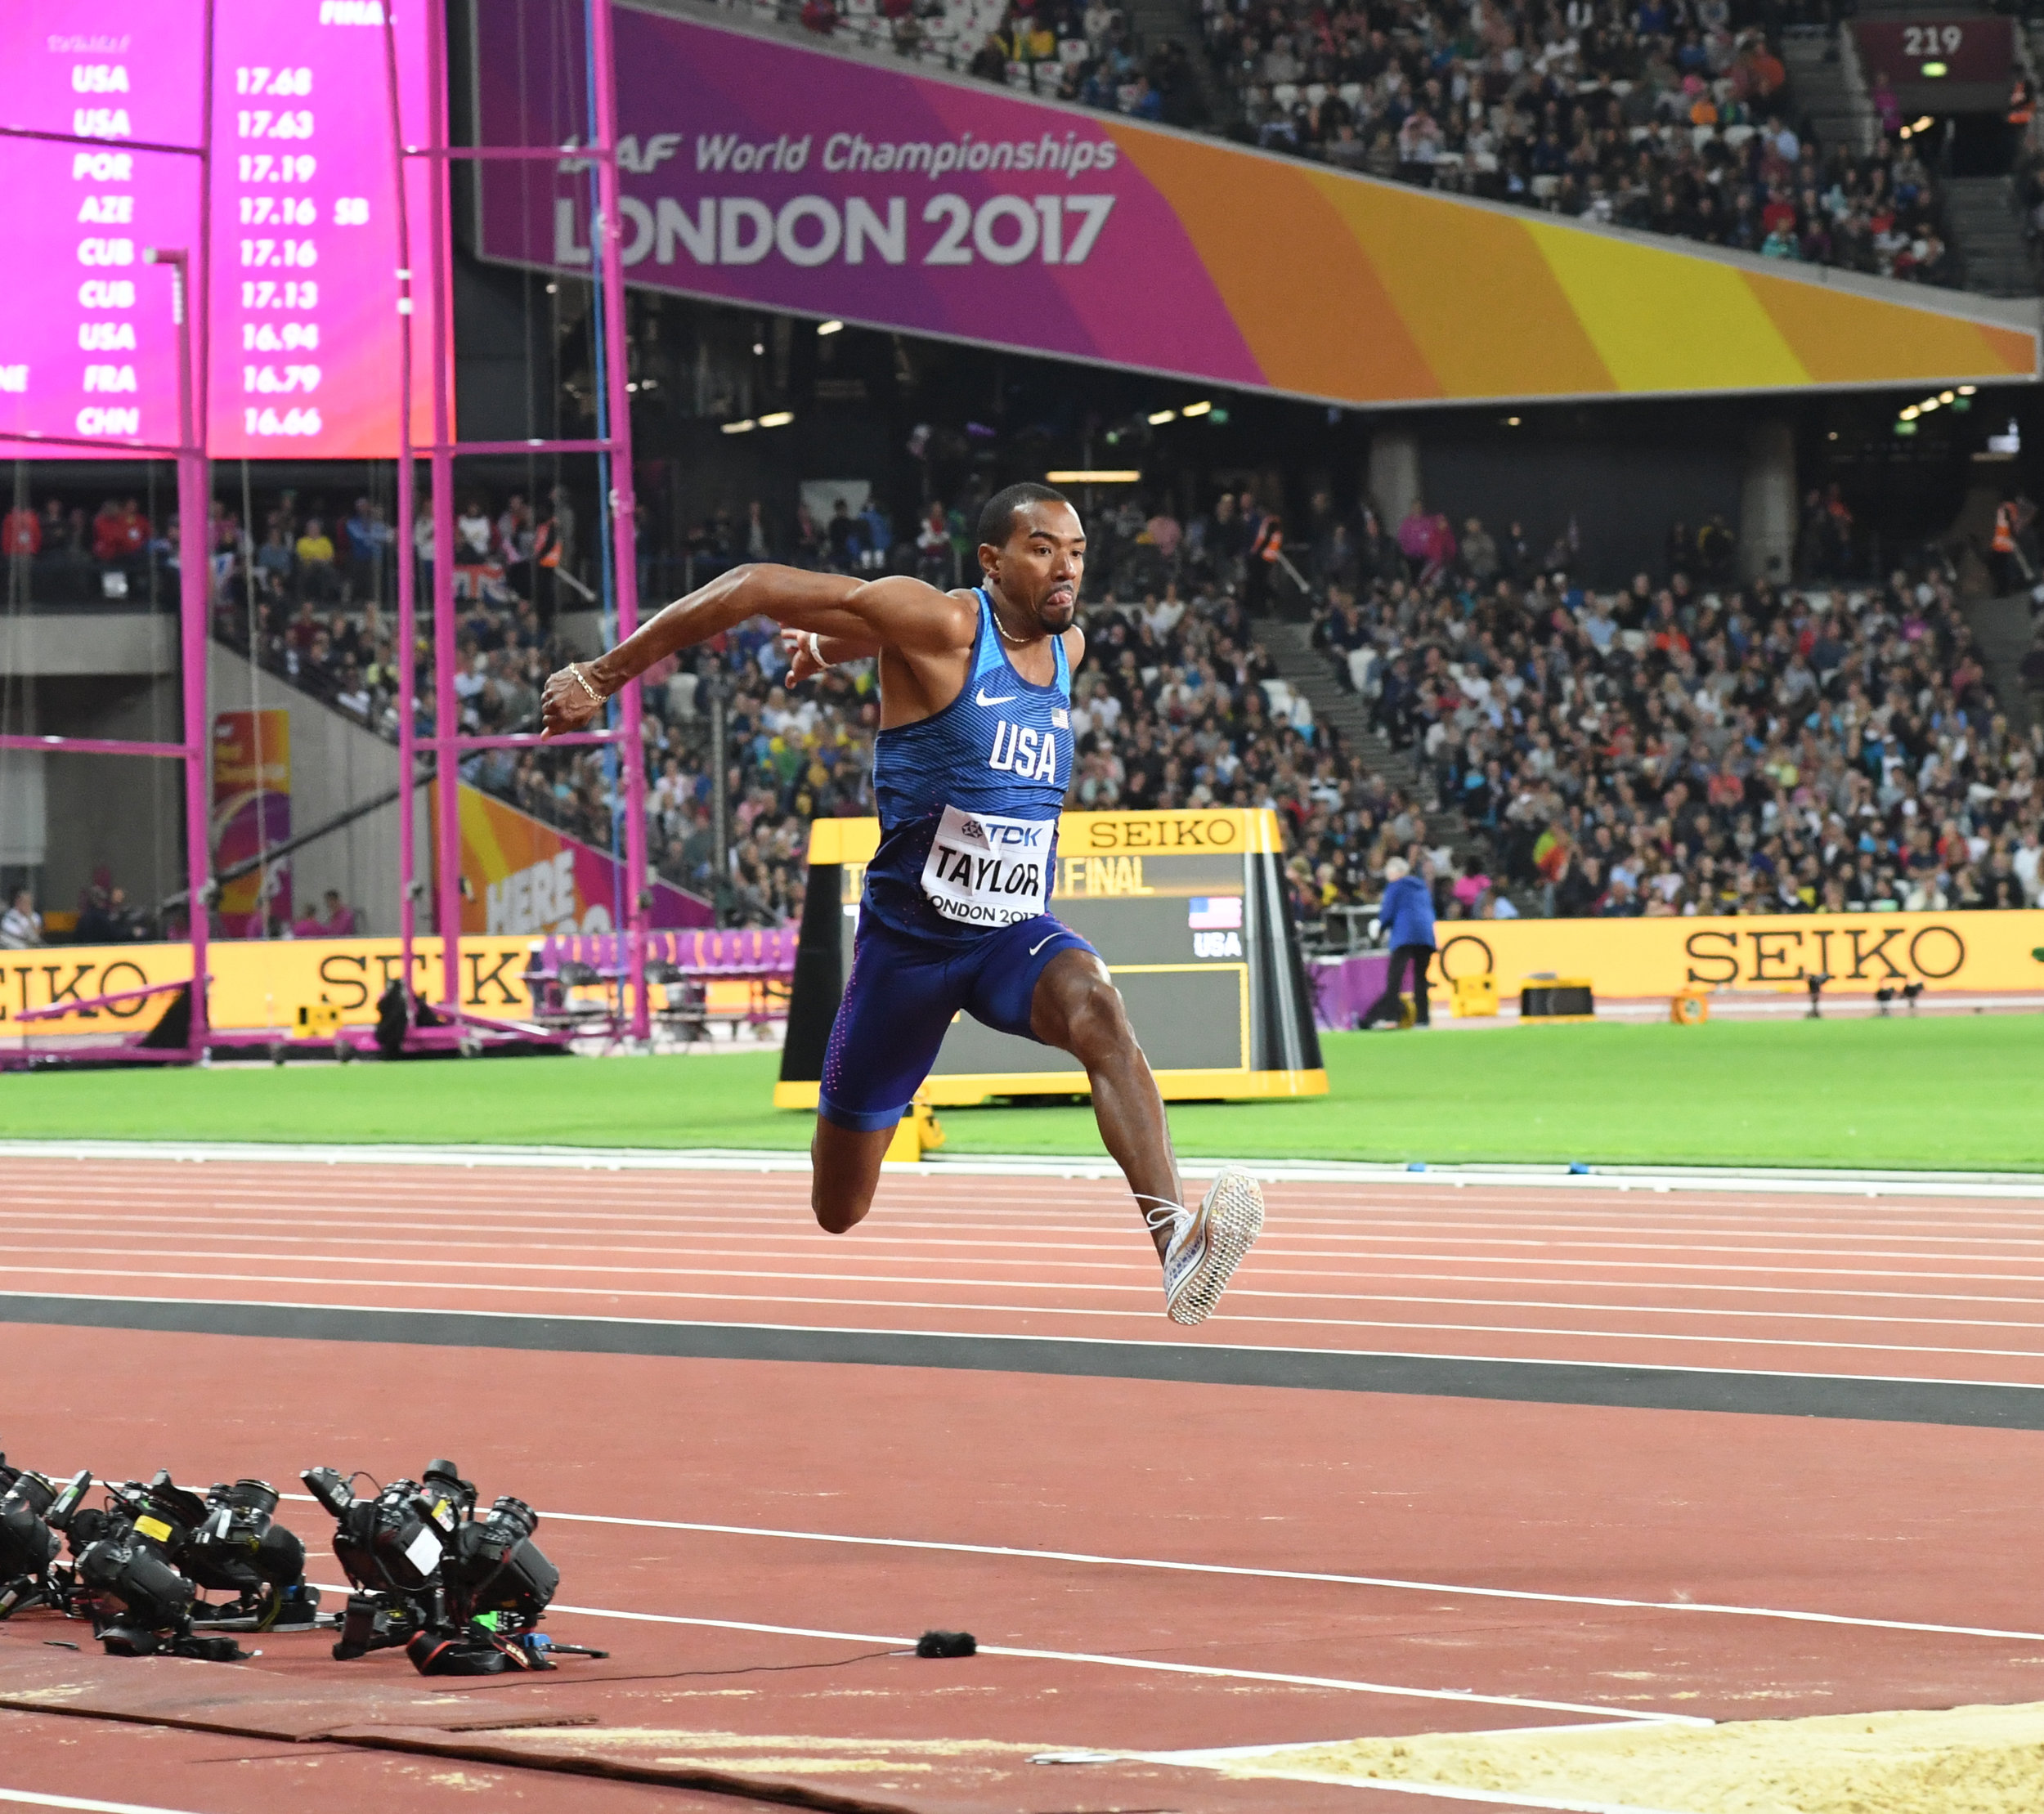 US Triple Jump world champion leaps through the air at the Queen Elizabeth Olympic Park in London (Photo: Enigma Sports)